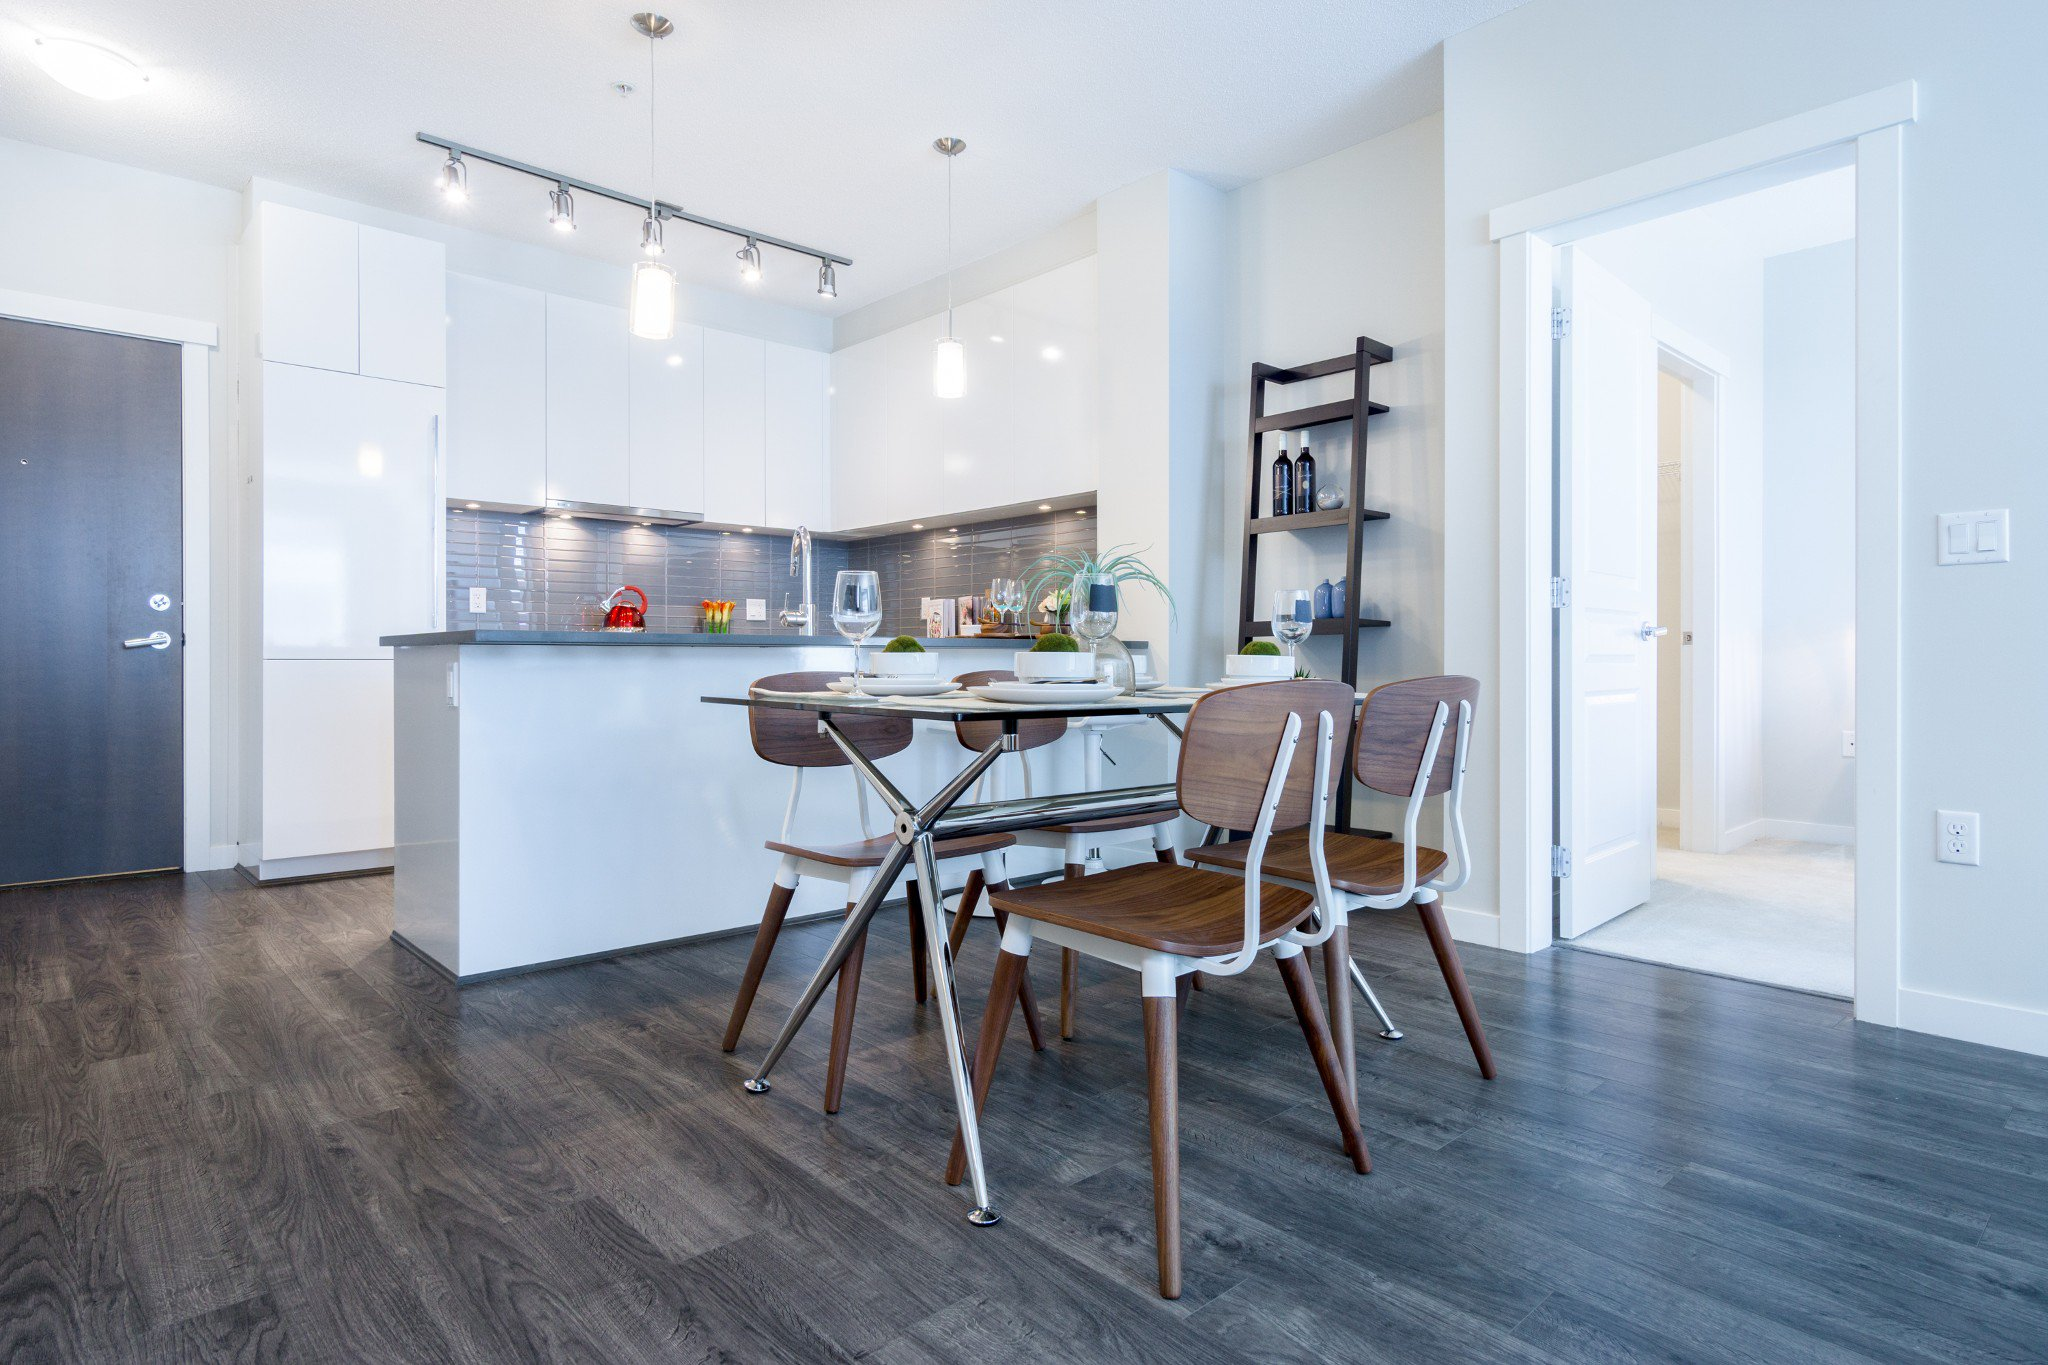 """Photo 12: Photos: 402 9311 ALEXANDRA Road in Richmond: West Cambie Condo for sale in """"ALEXANDRA COURT"""" : MLS®# R2266613"""